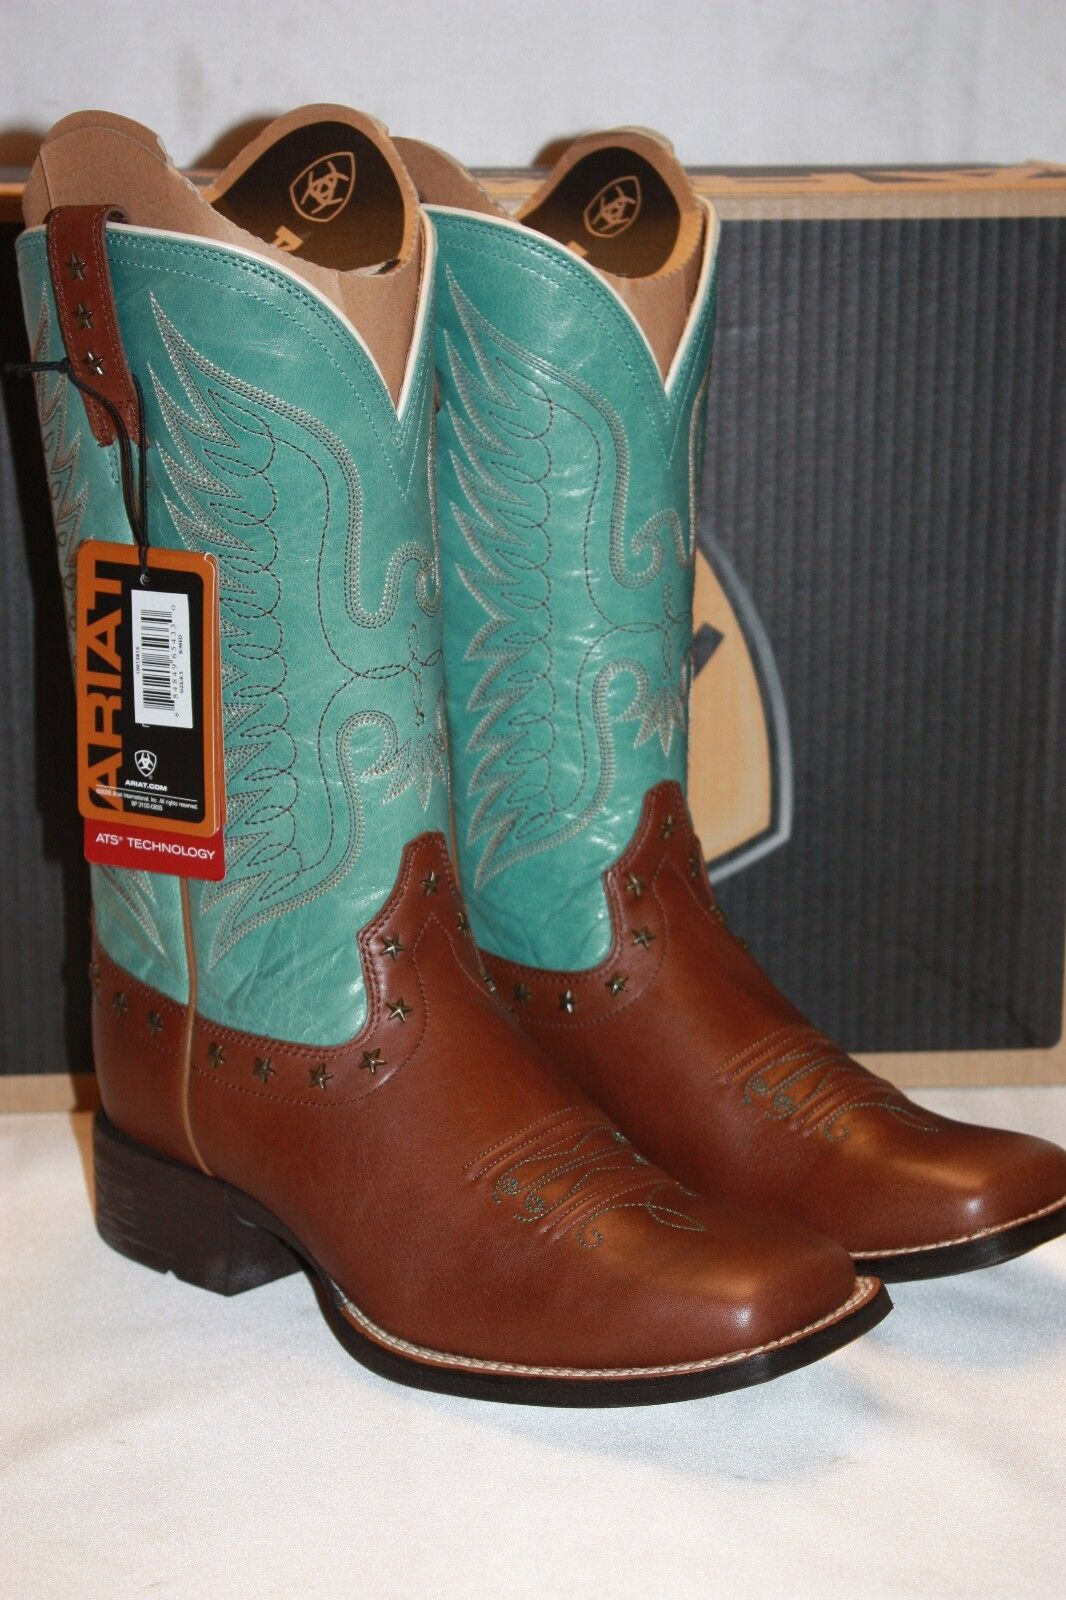 NEW! NIB! ARIAT Dark Bay Glazed Turquoise Leather HONOR Square Toe Boots $260